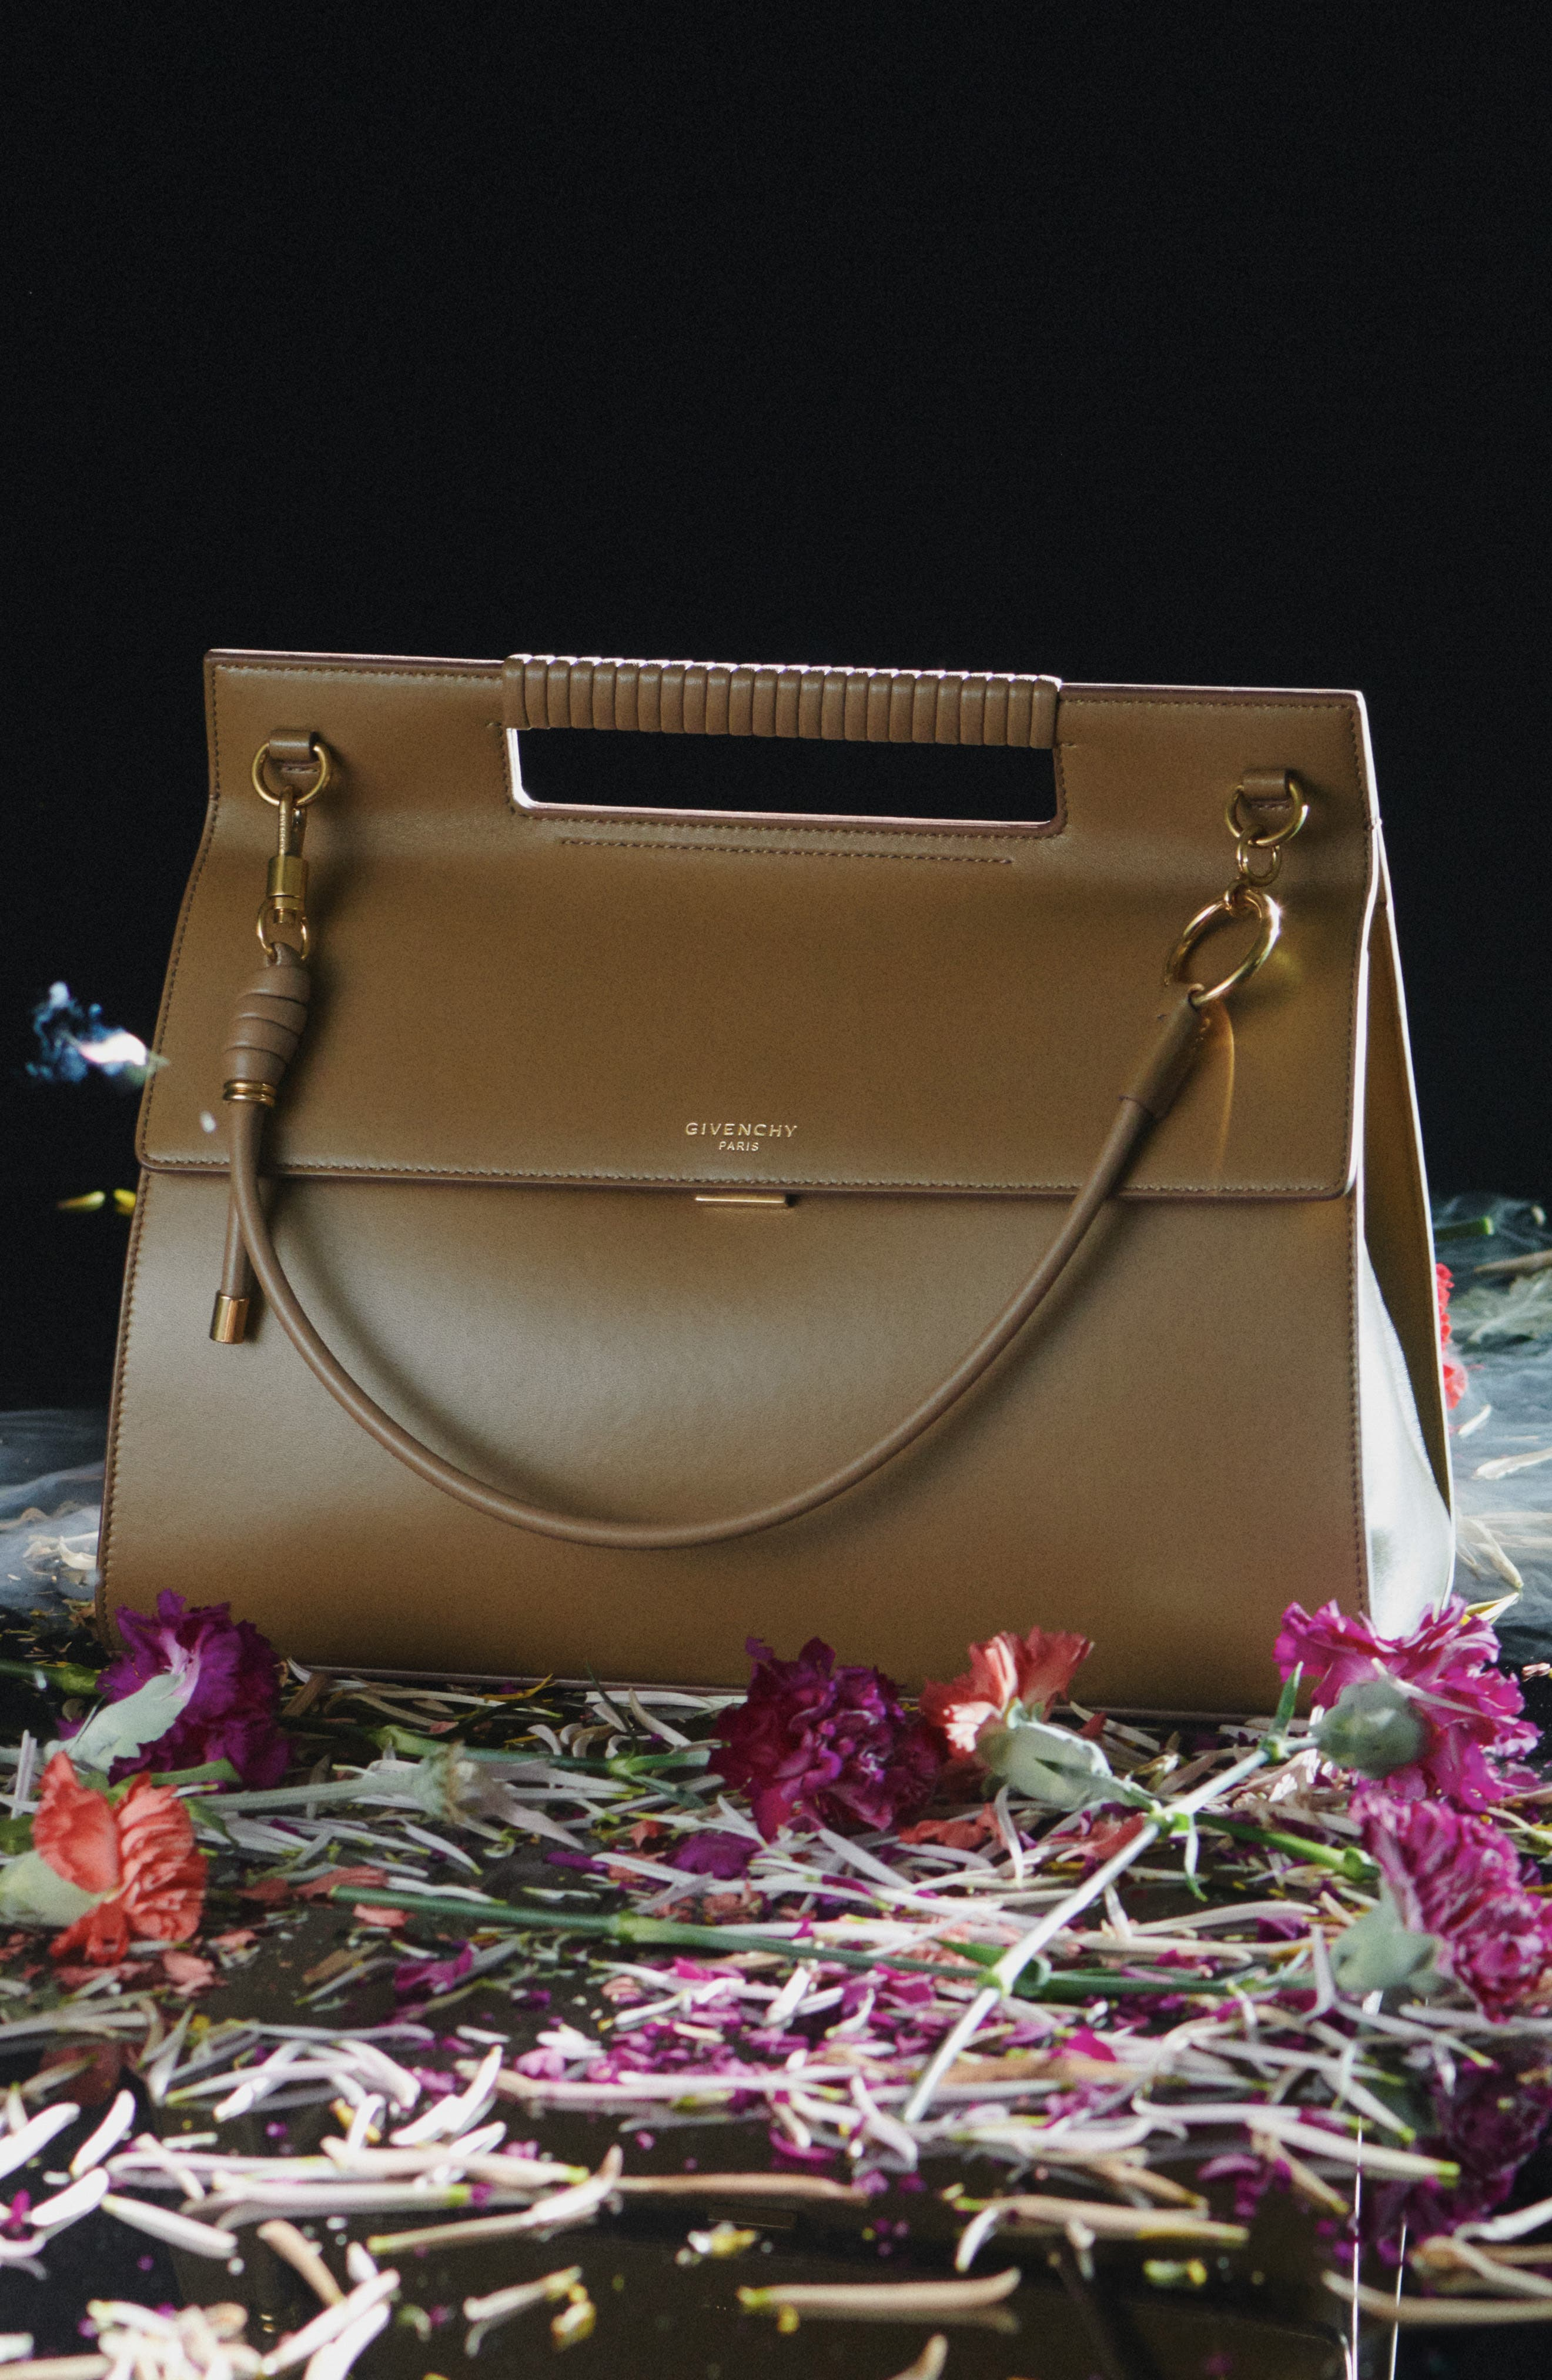 GIVENCHY, Whip Large Leather Satchel, Main thumbnail 1, color, TAUPE